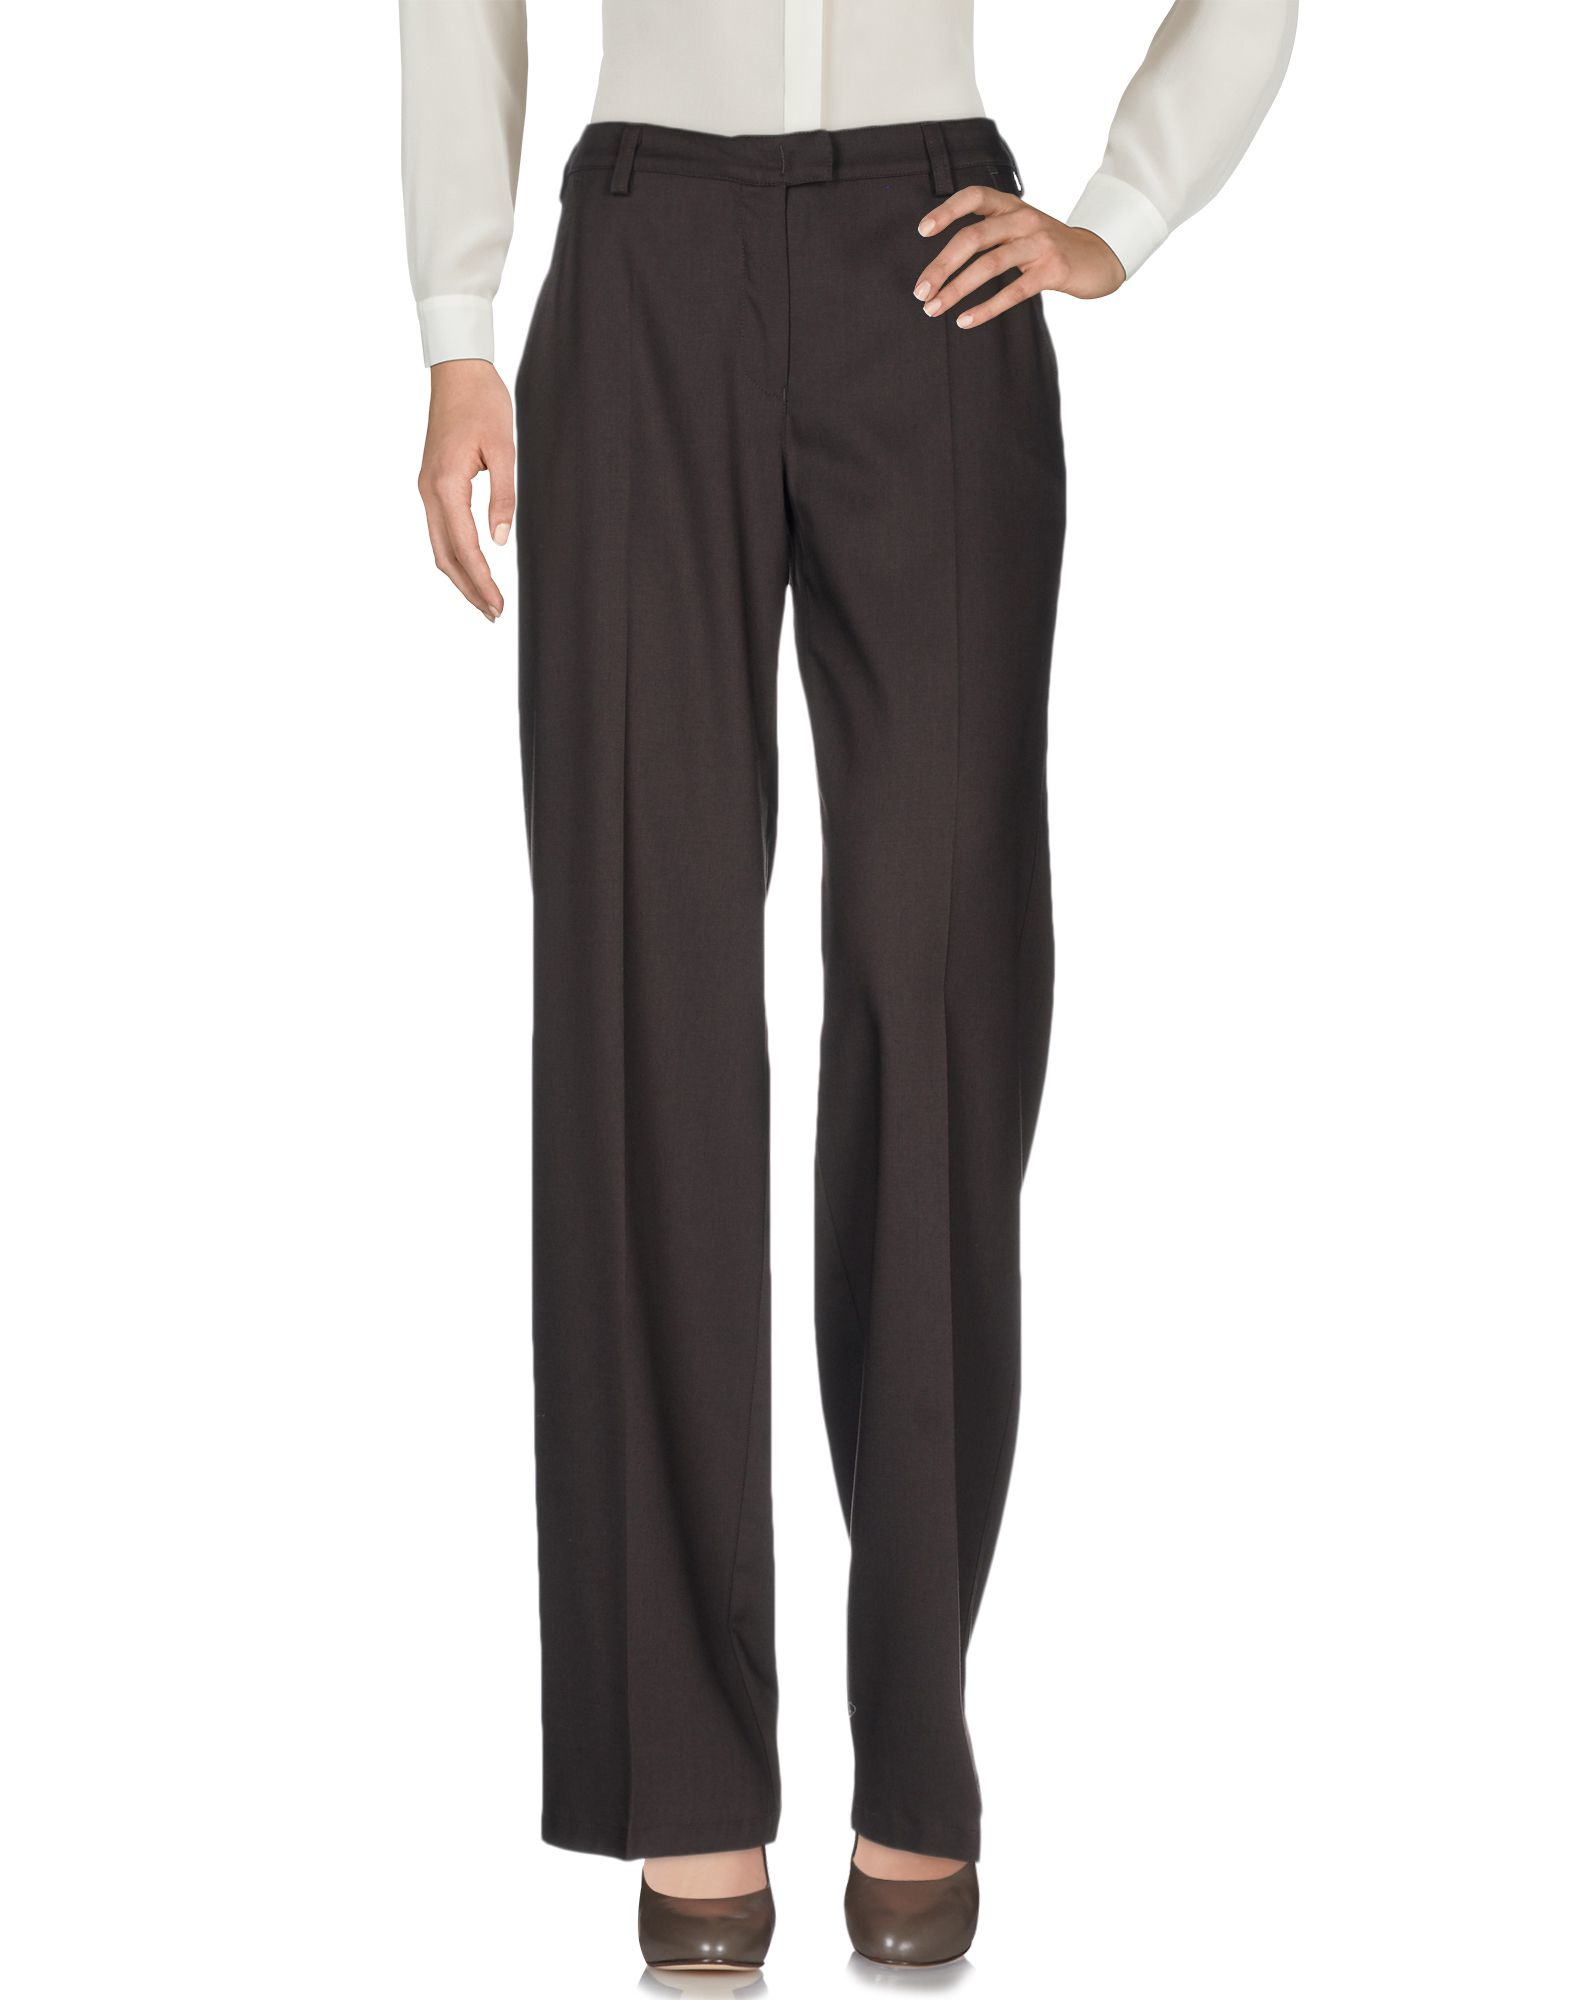 Perfect Women With Control Pants XXST Pull On Elastic Waist Dark Brown  EBay